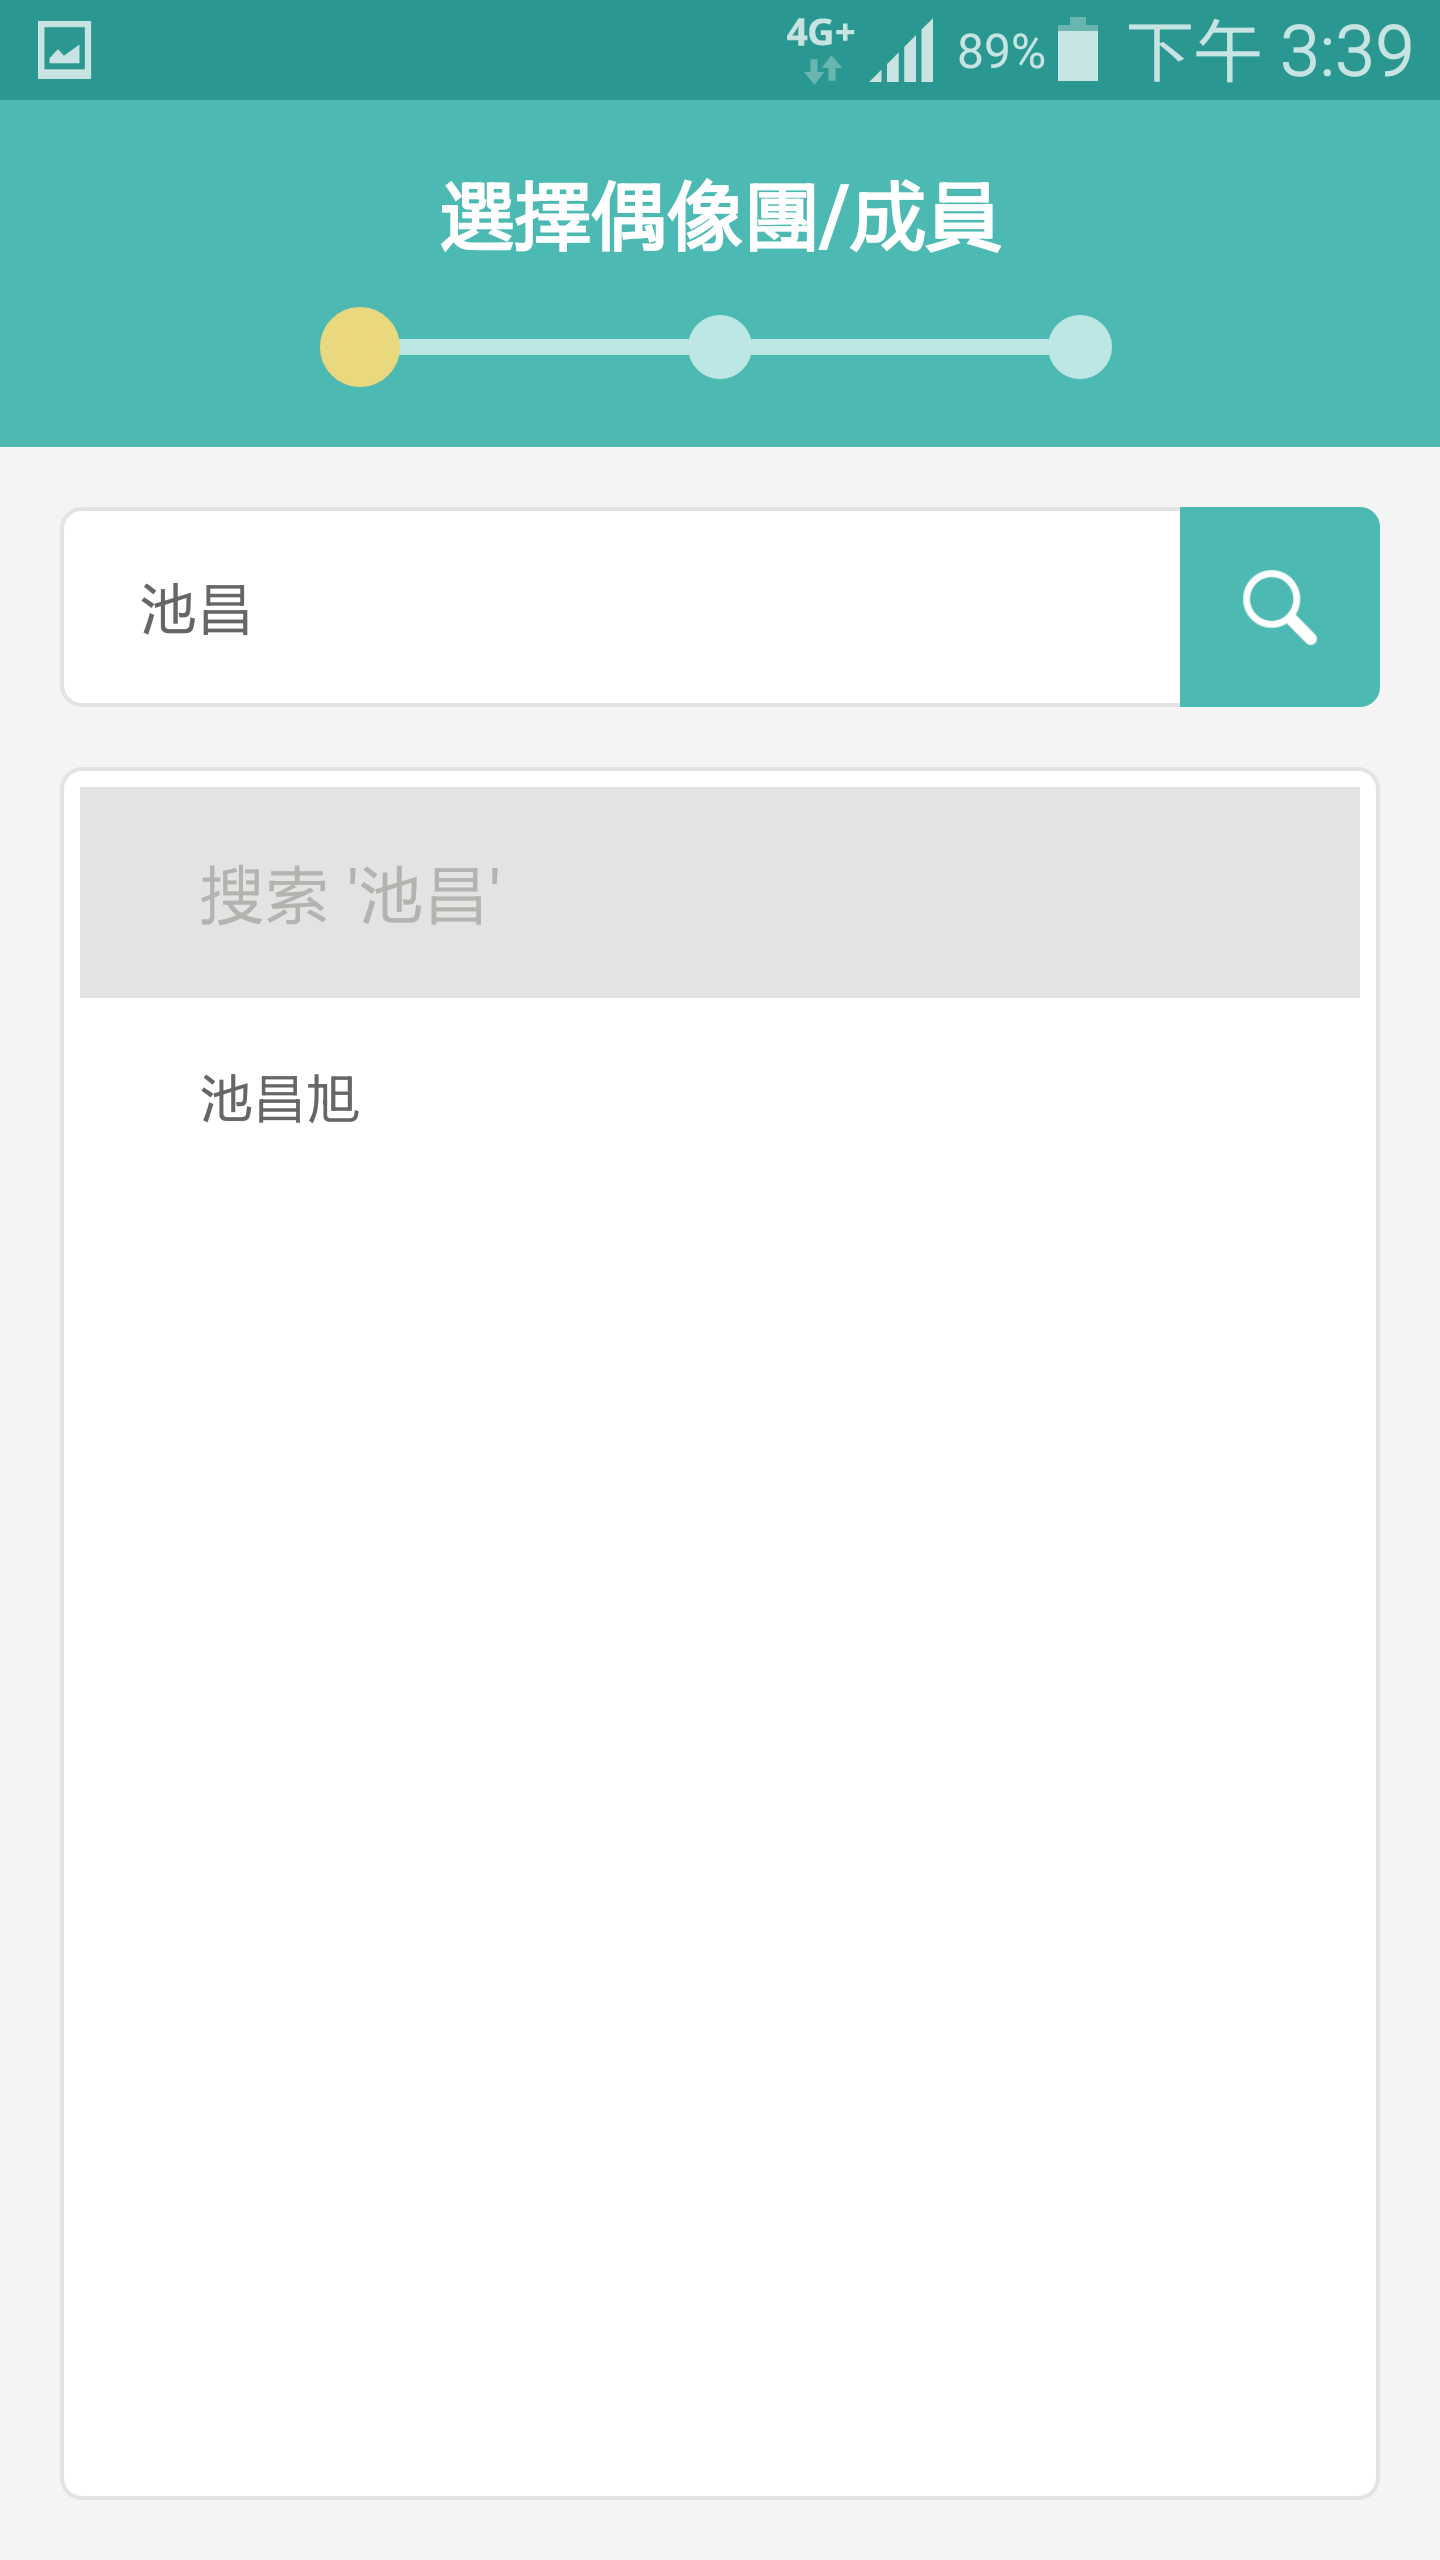 Screenshot_2015-08-27-15-39-53.png